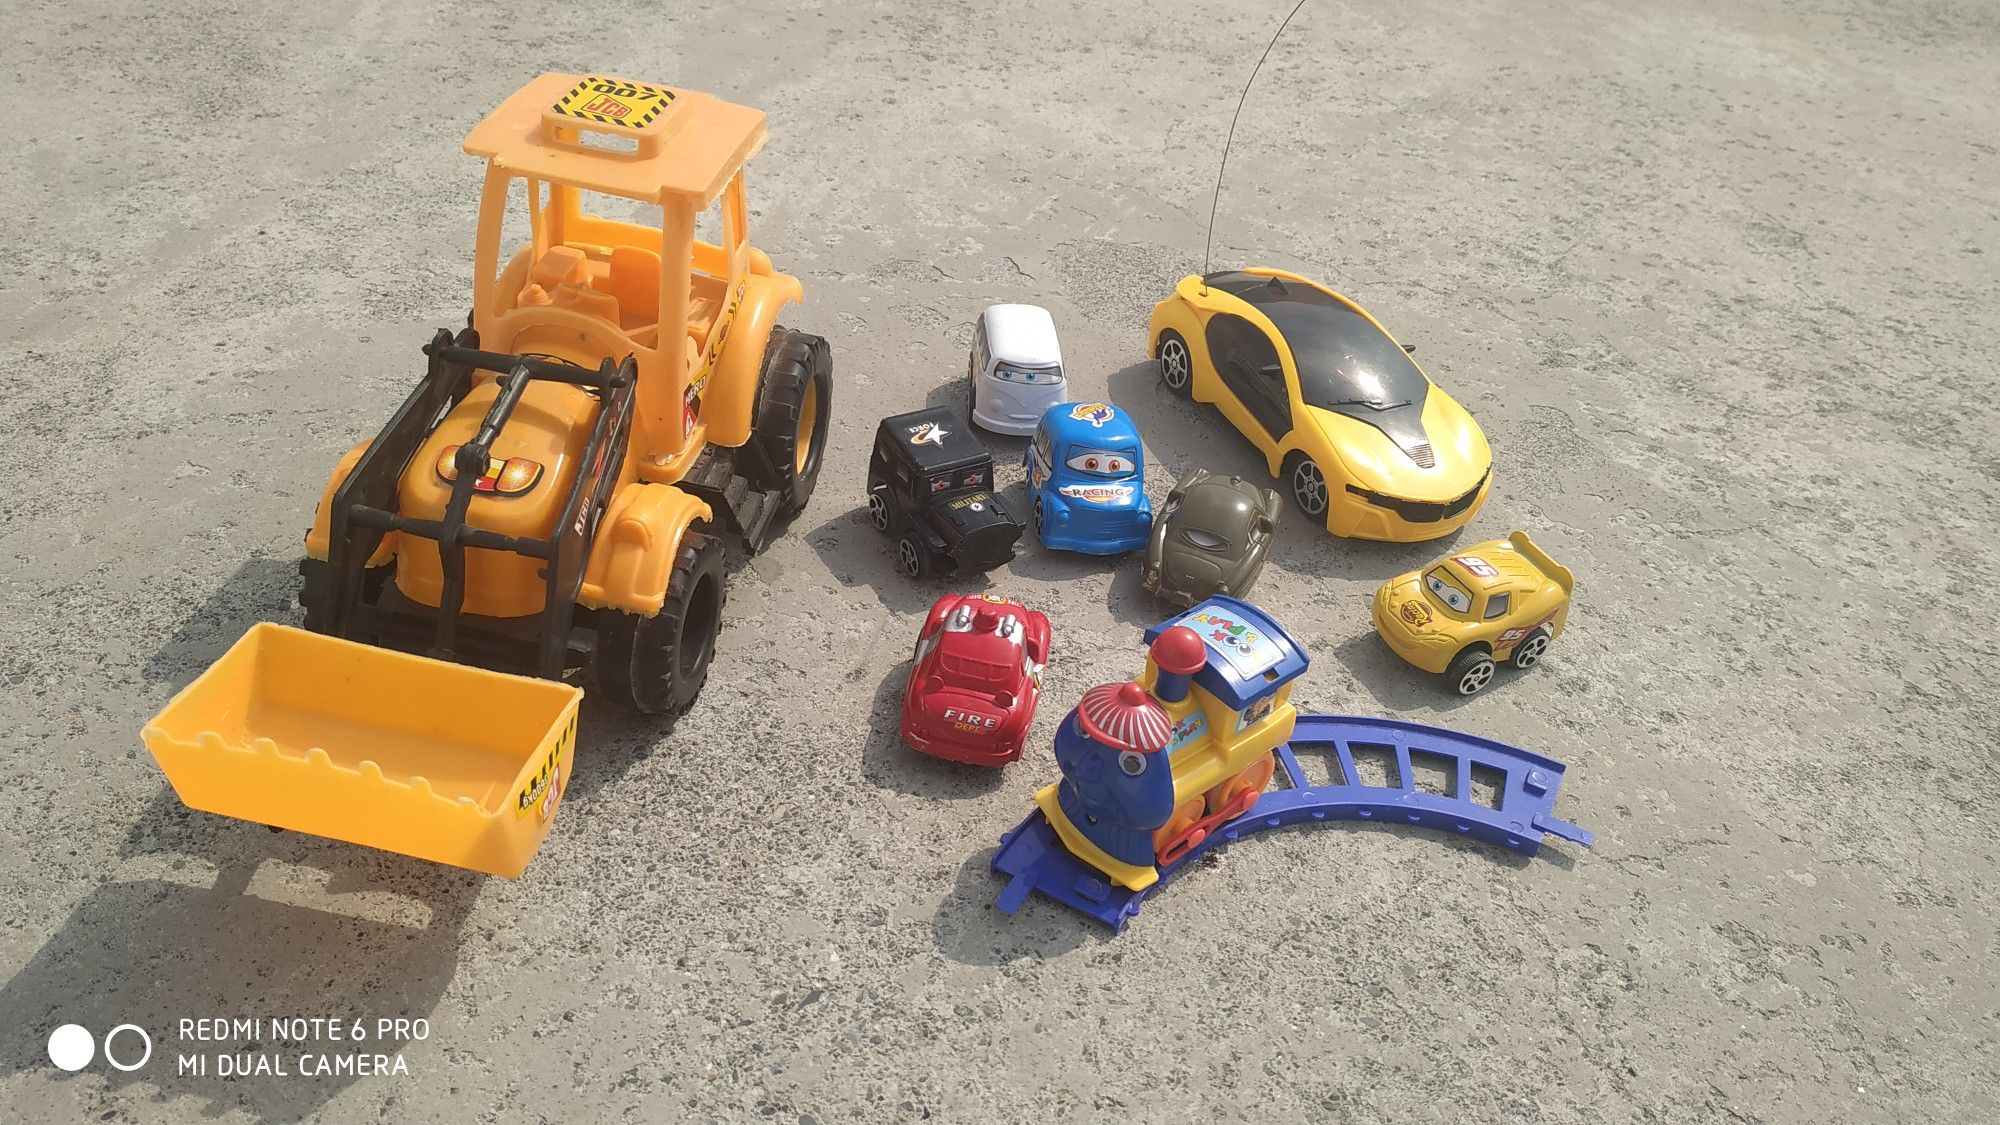 Jcb Toy Car Train Super Car Toy For Kids Kids Toys Toy Car Excavator Toy